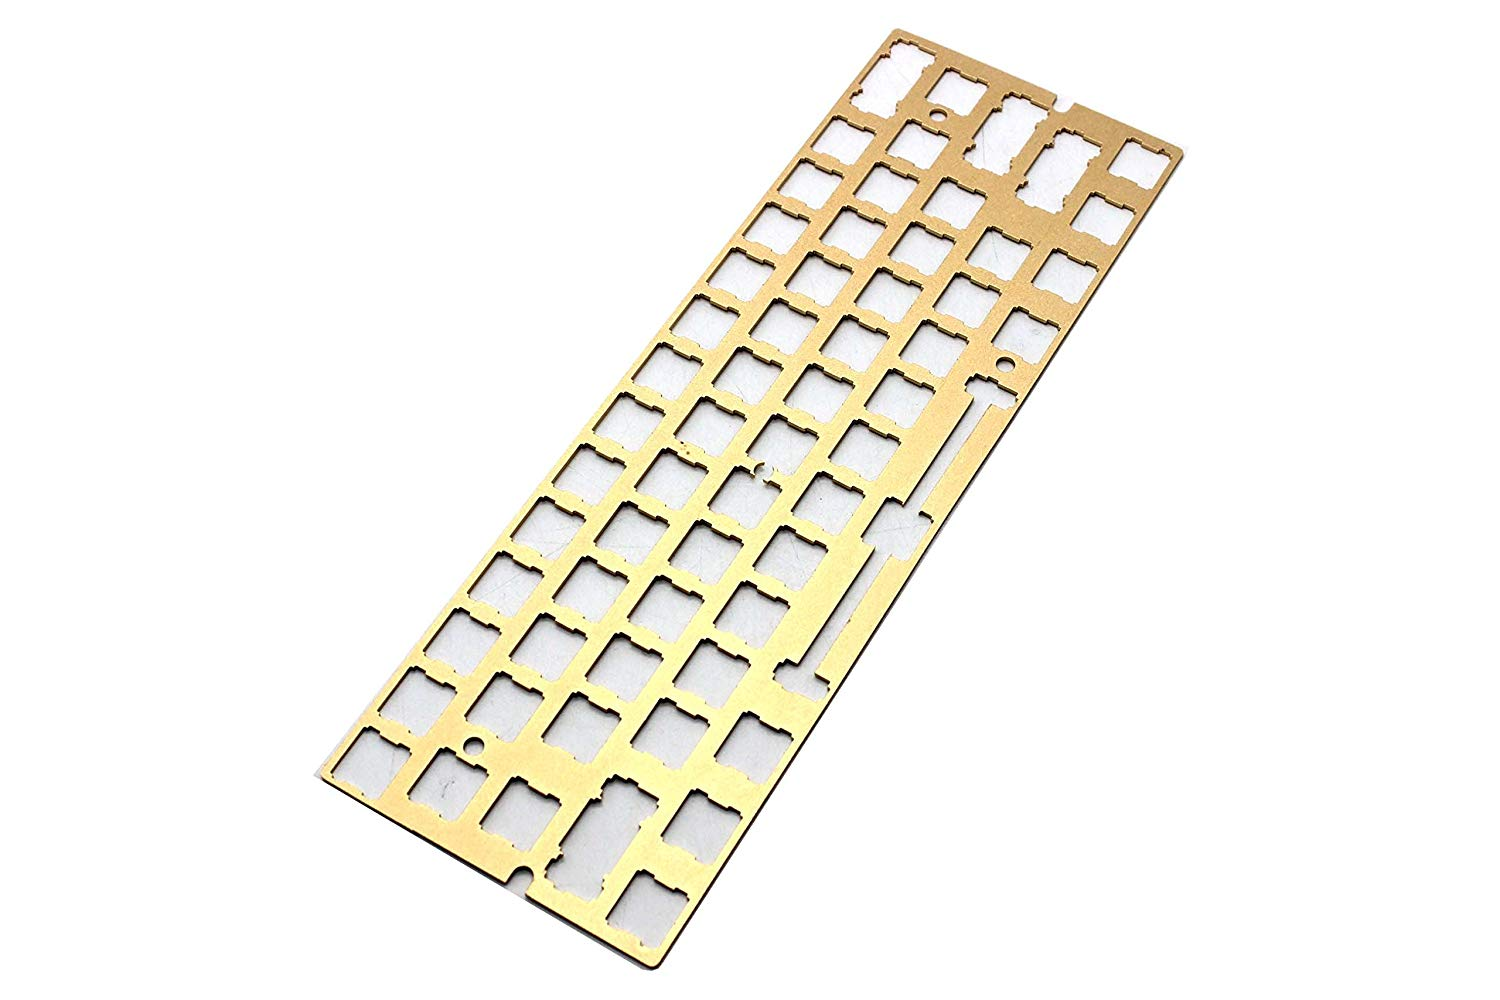 ANSI Costar Stabilizers Anodized Aluminum Positioning Board Plate Support For GH60 60% Keyboard DIY (Gold)